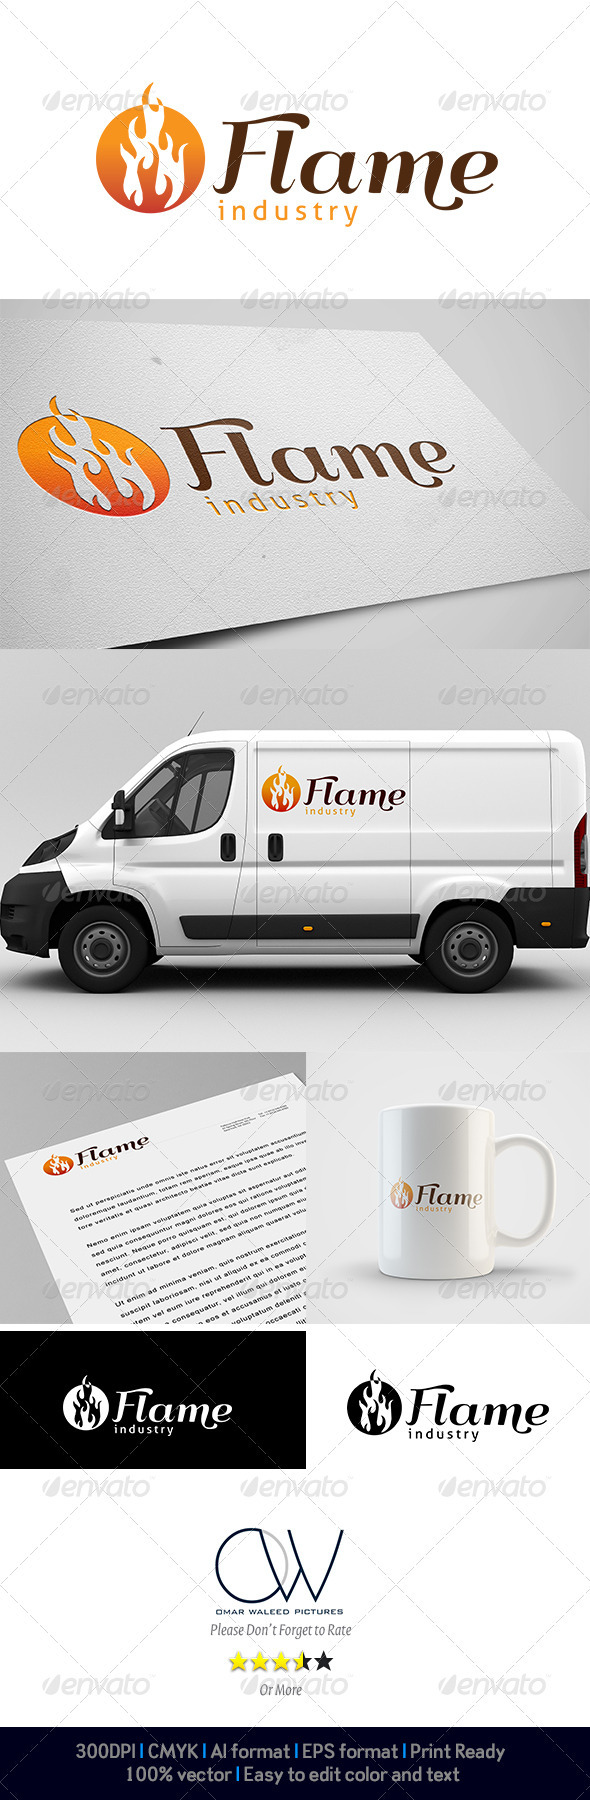 Flame Industry Logo - Abstract Logo Templates